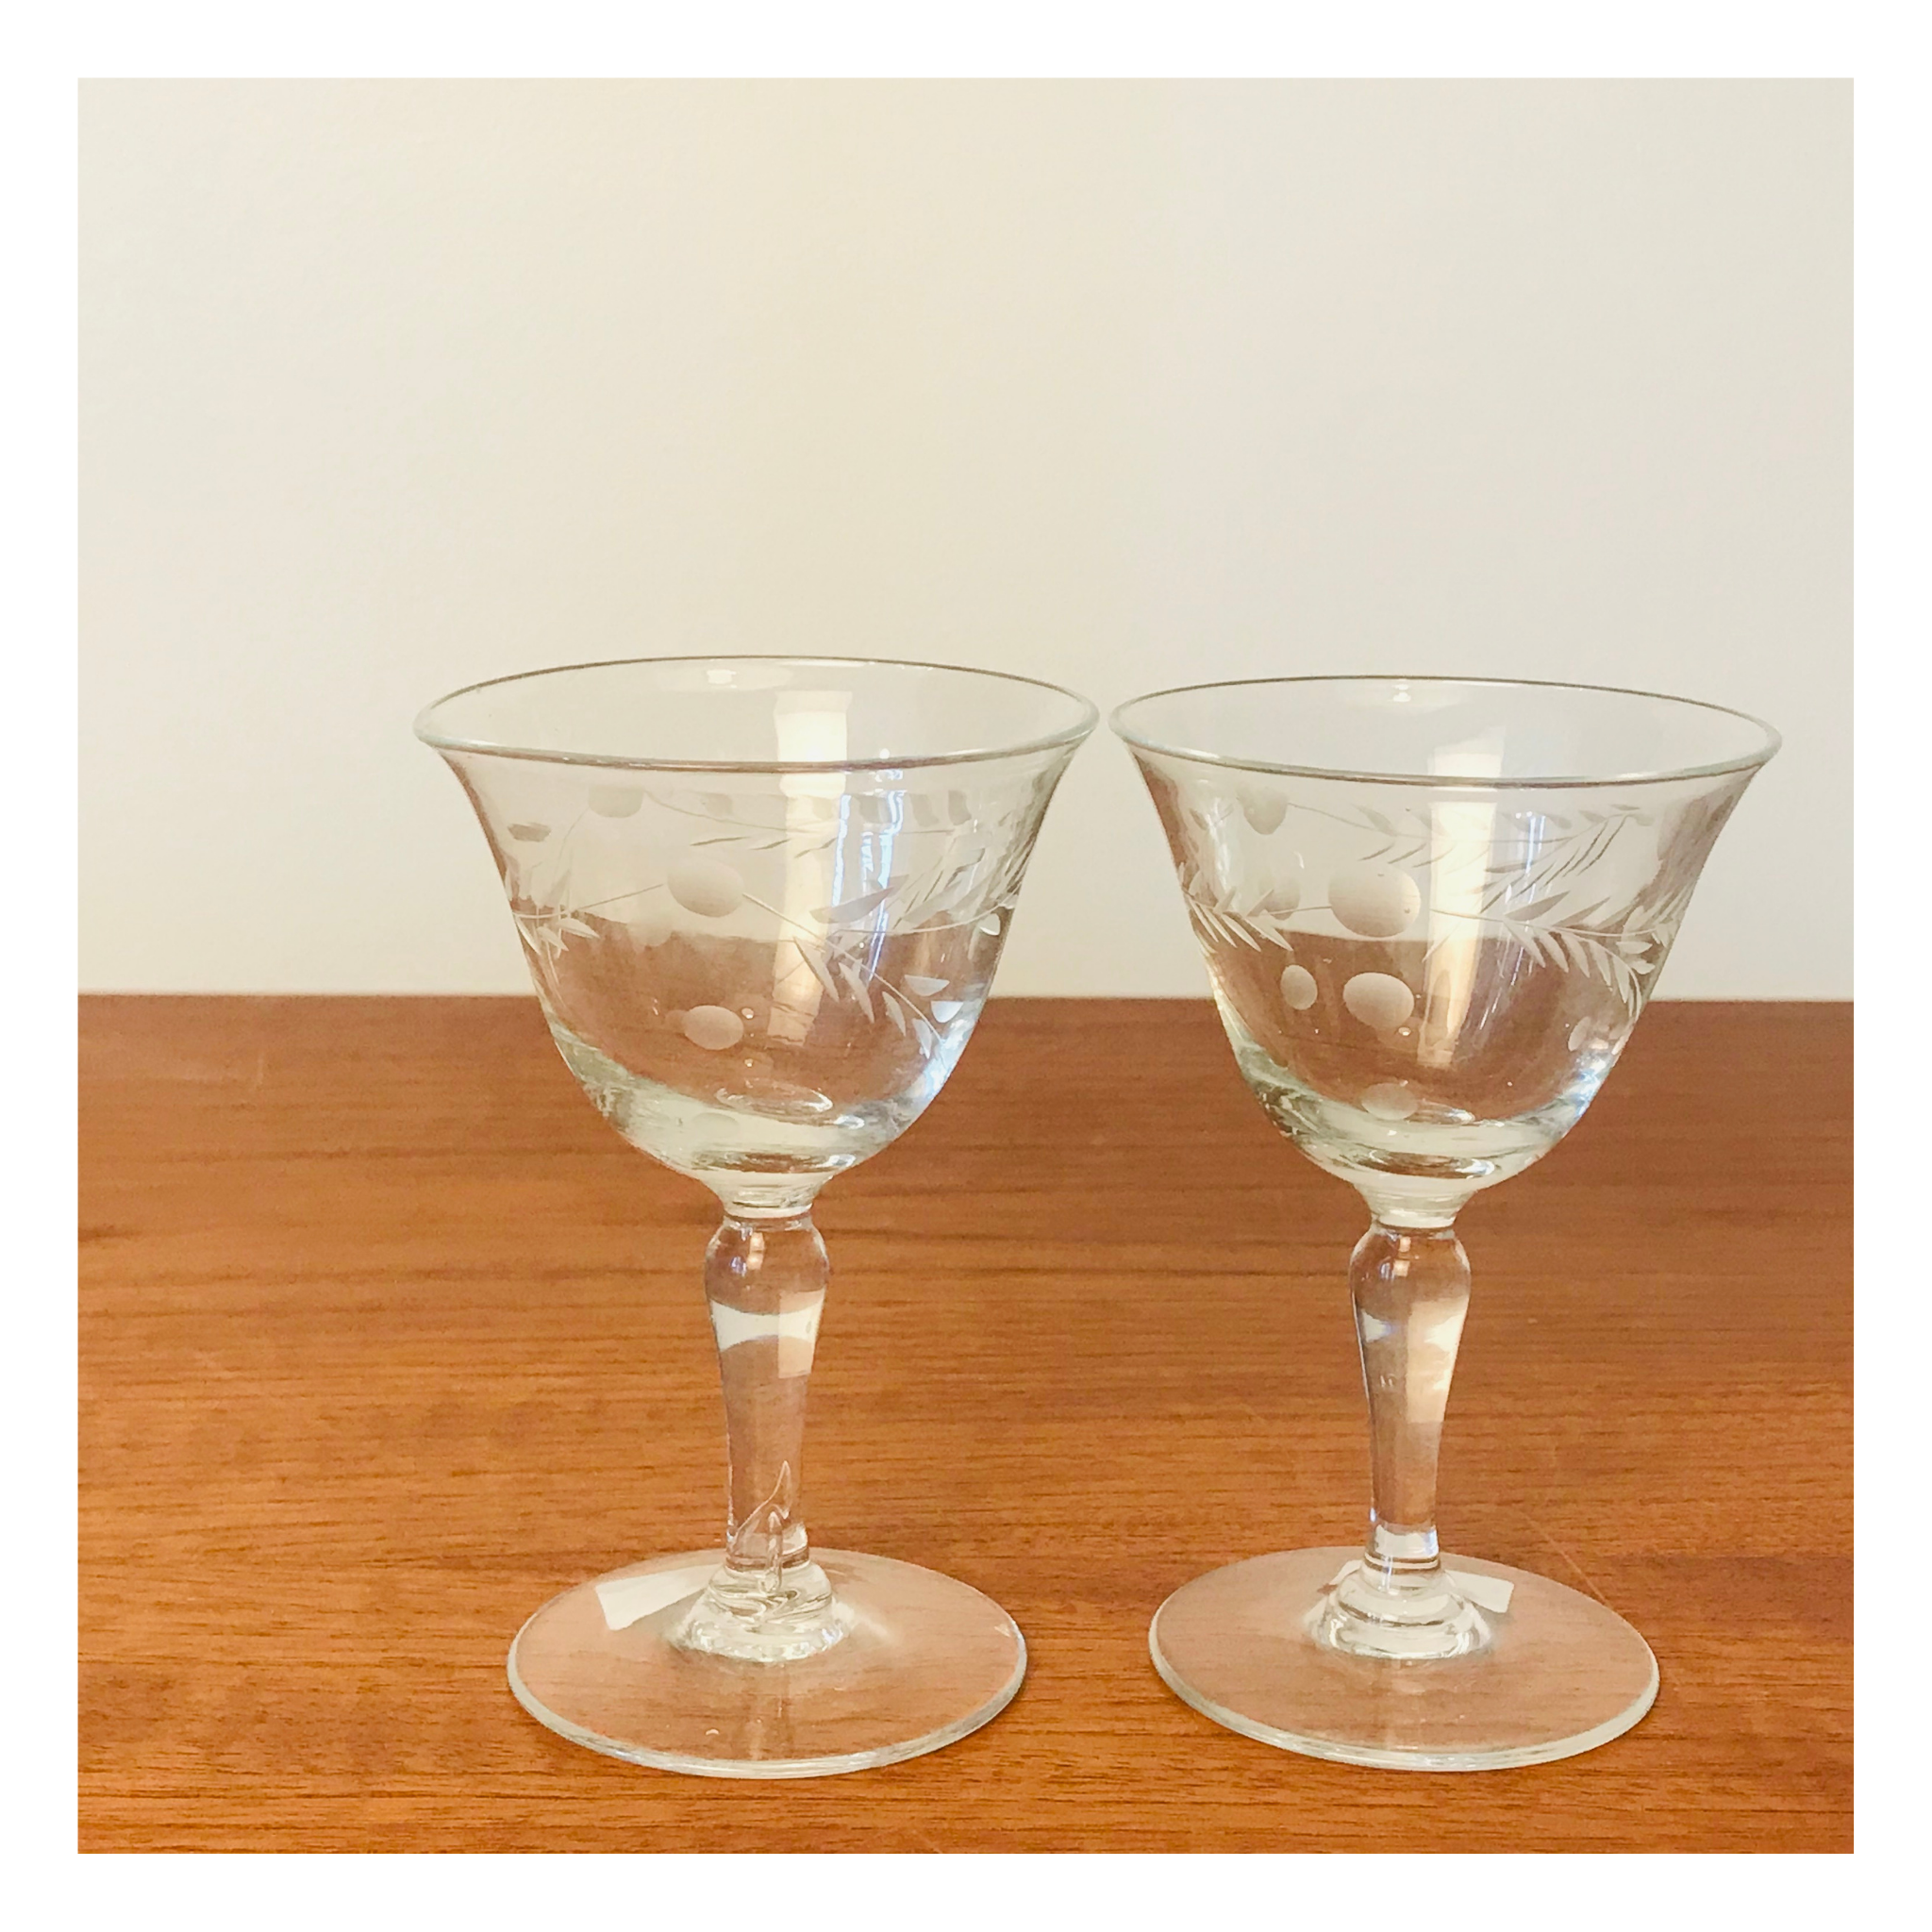 Set of 2 Etched Port or Sherry Glasses